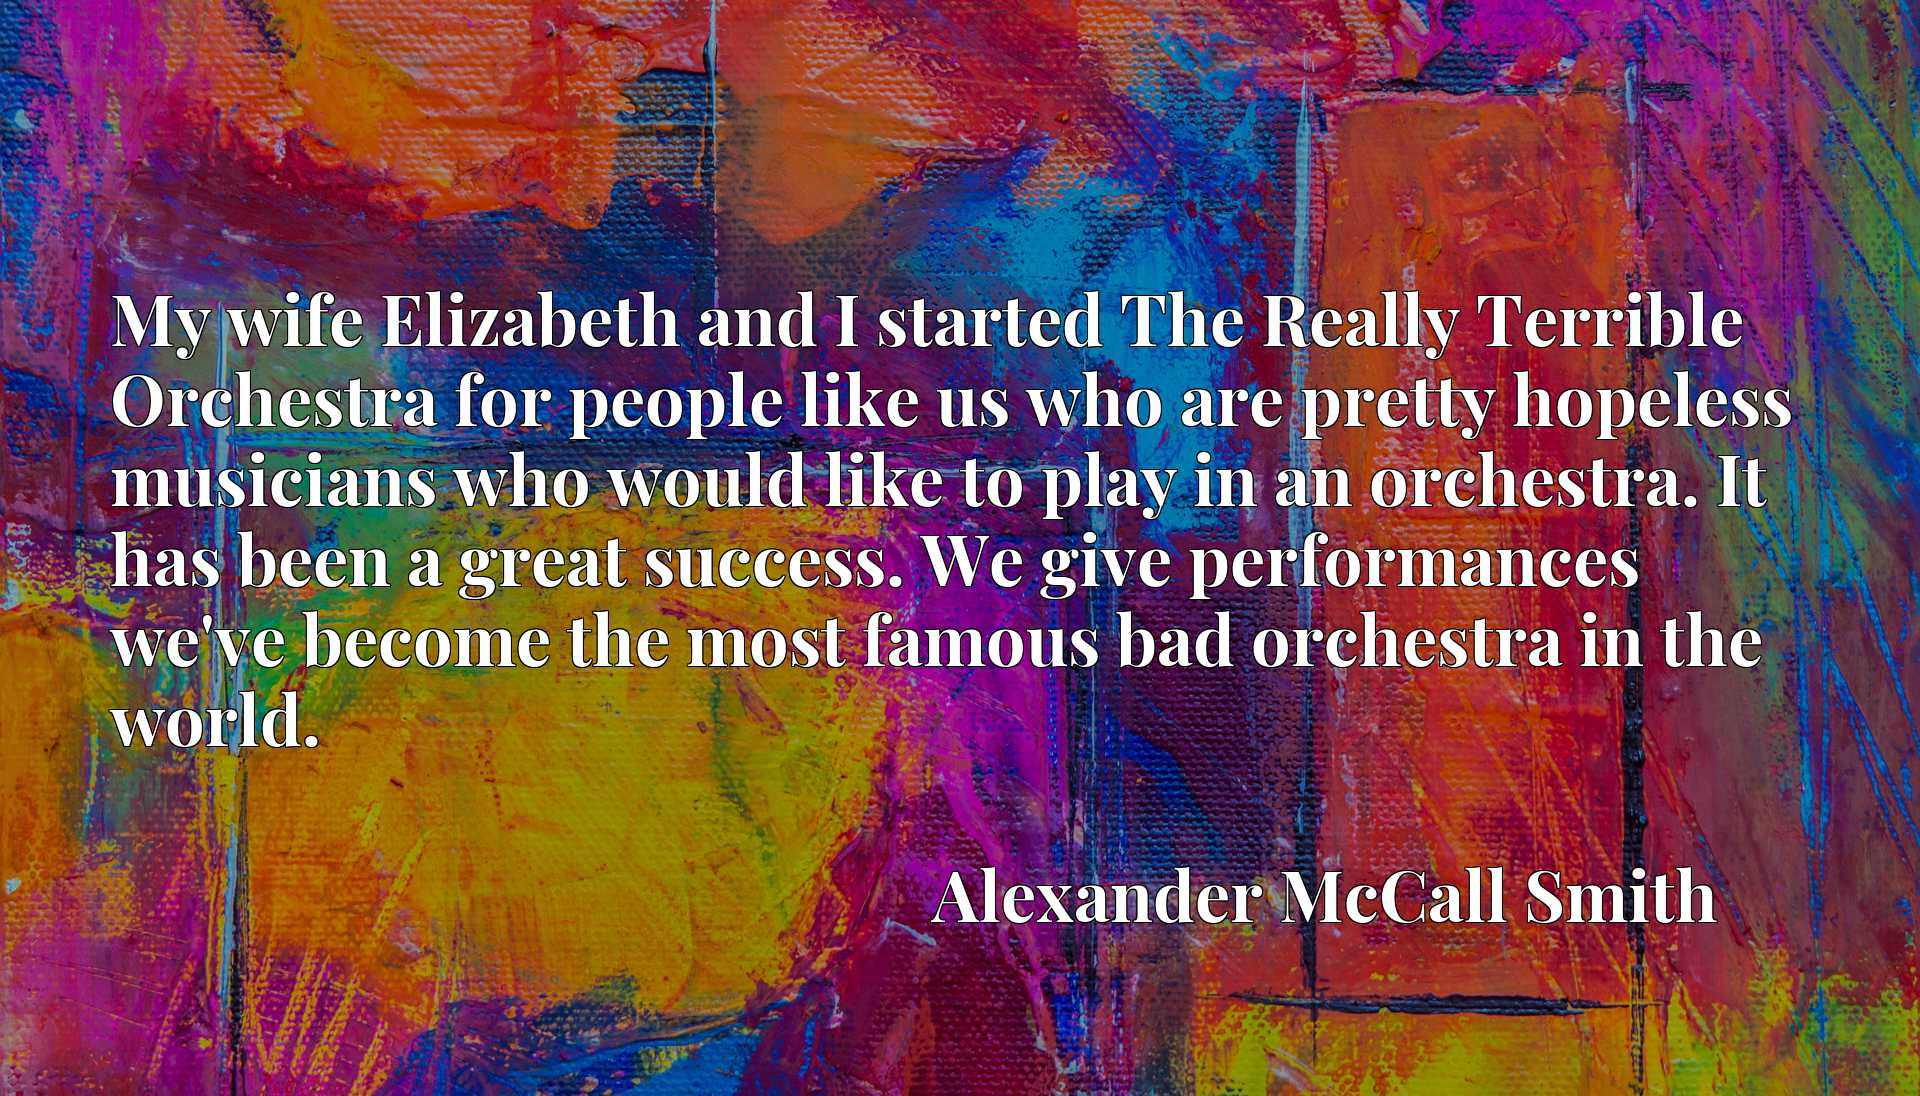 My wife Elizabeth and I started The Really Terrible Orchestra for people like us who are pretty hopeless musicians who would like to play in an orchestra. It has been a great success. We give performances we've become the most famous bad orchestra in the world.